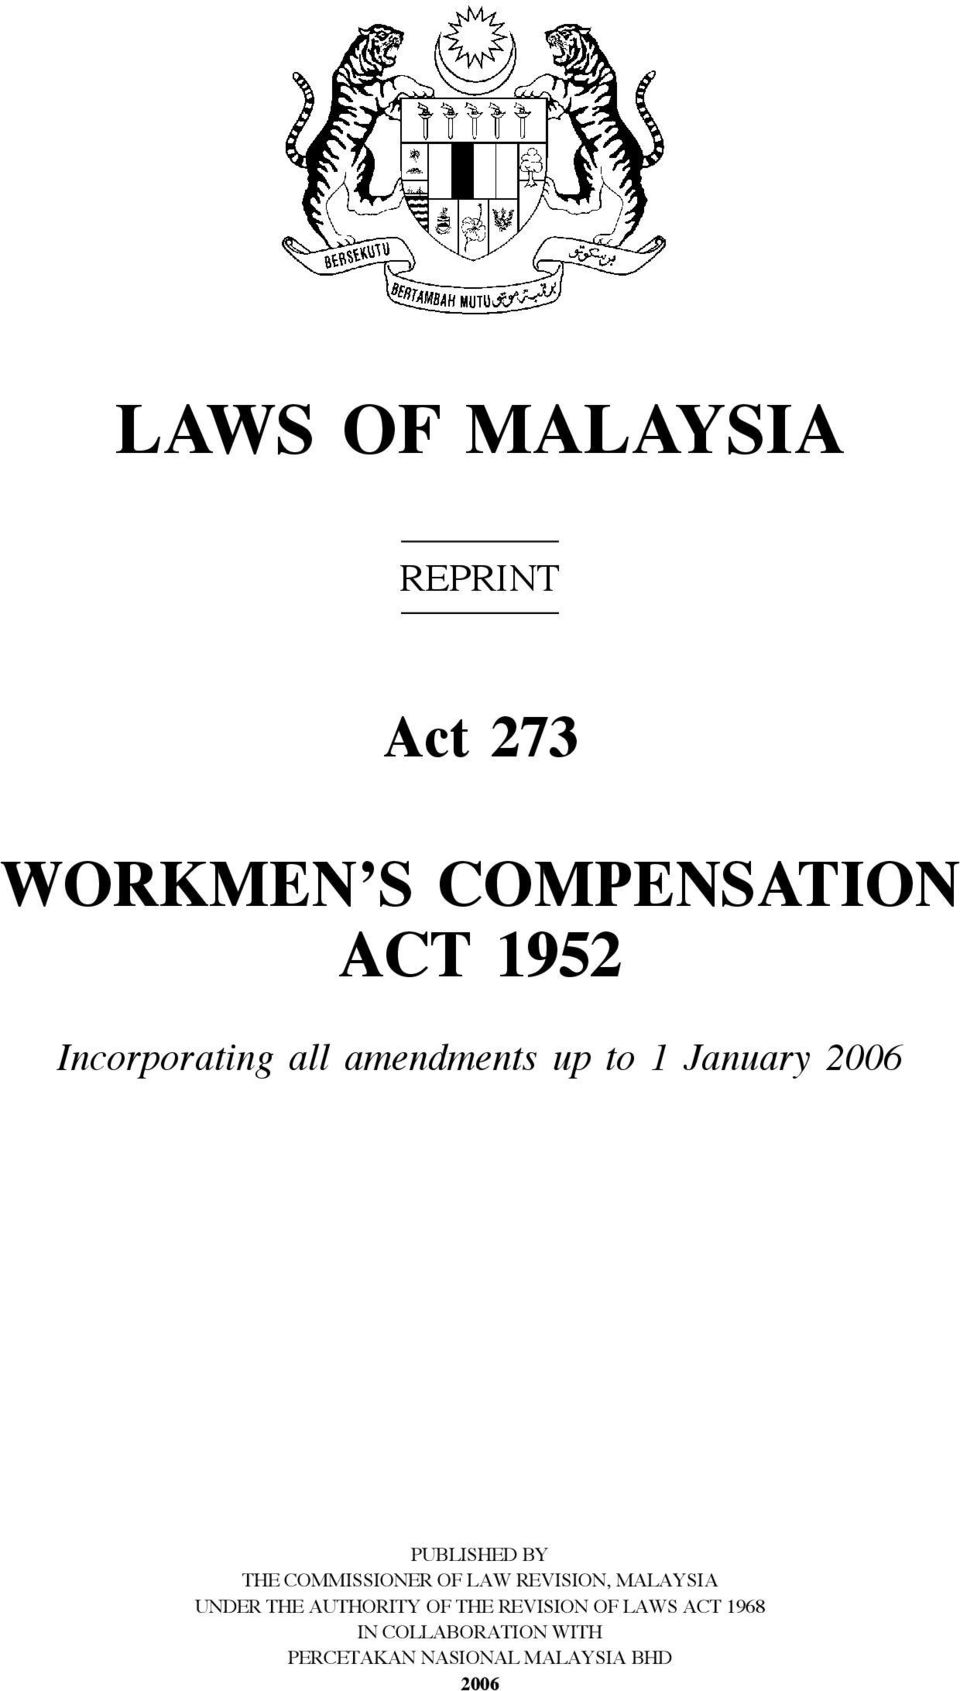 PUBLISHED BY THE COMMISSIONER OF LAW REVISION, MALAYSIA UNDER THE AUTHORITY